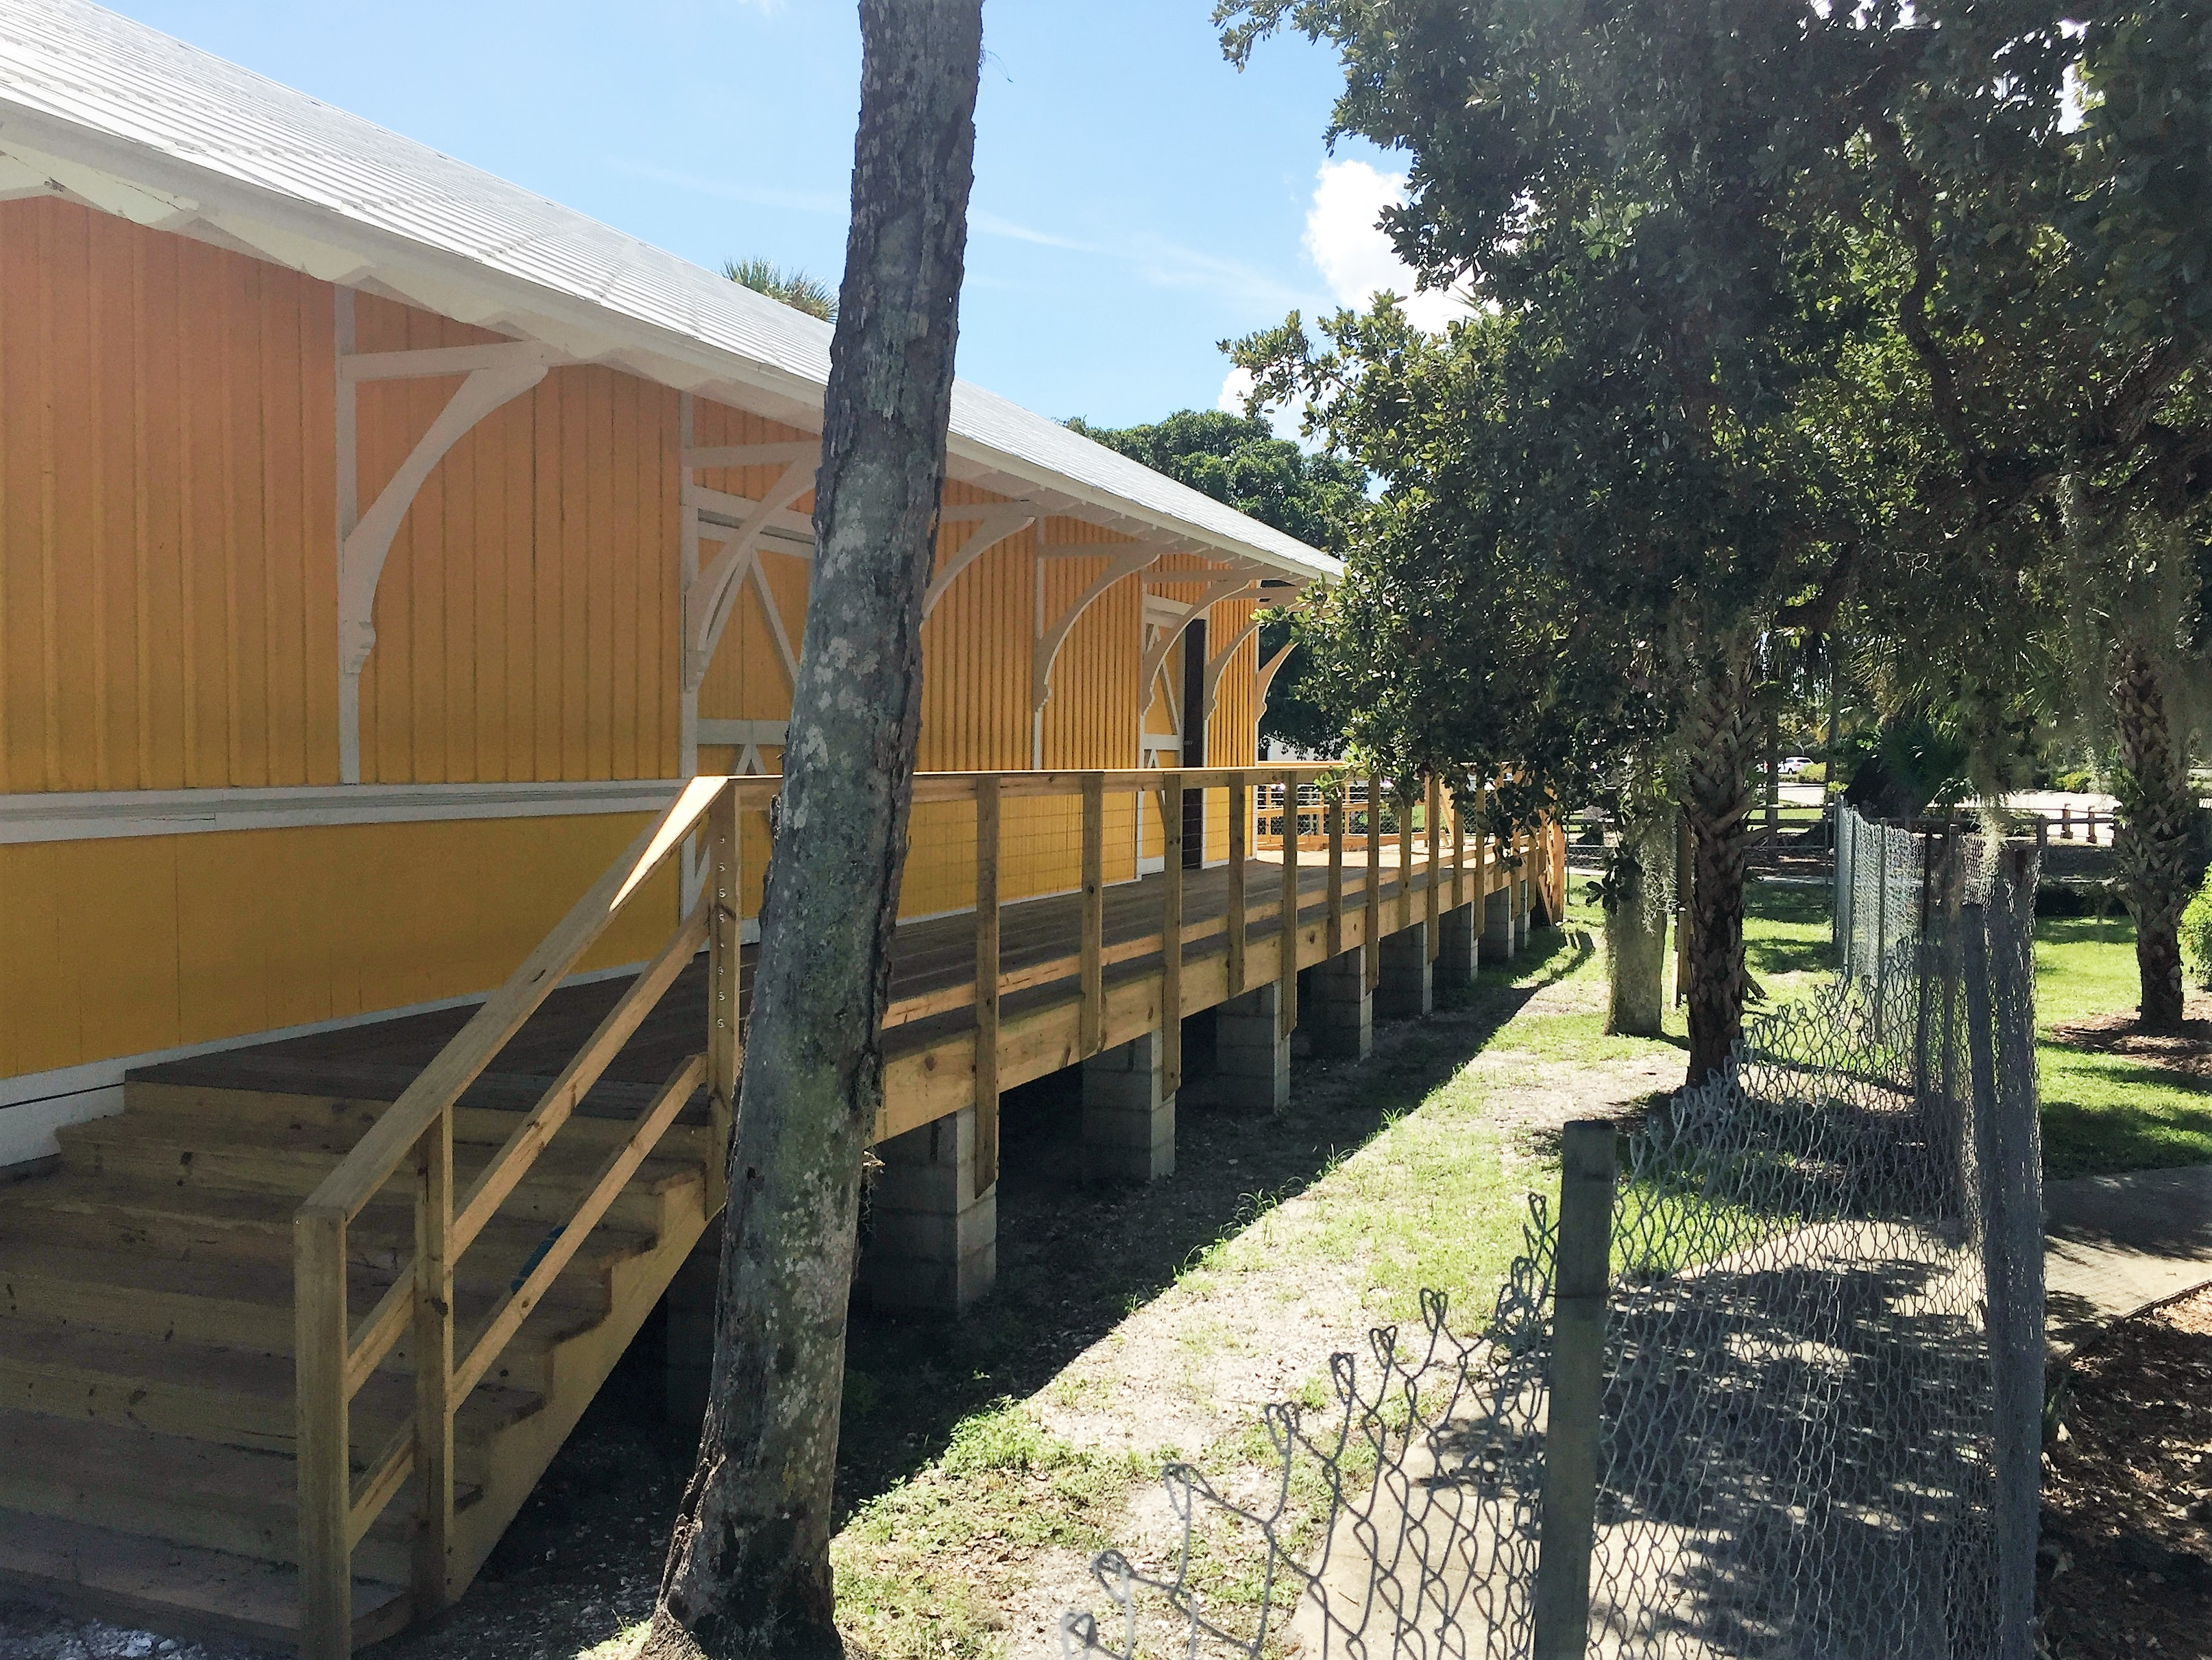 The depot served the public well for many years!! When it was closed in the mid-1960s, it was moved to become a private residence in Tequesta.